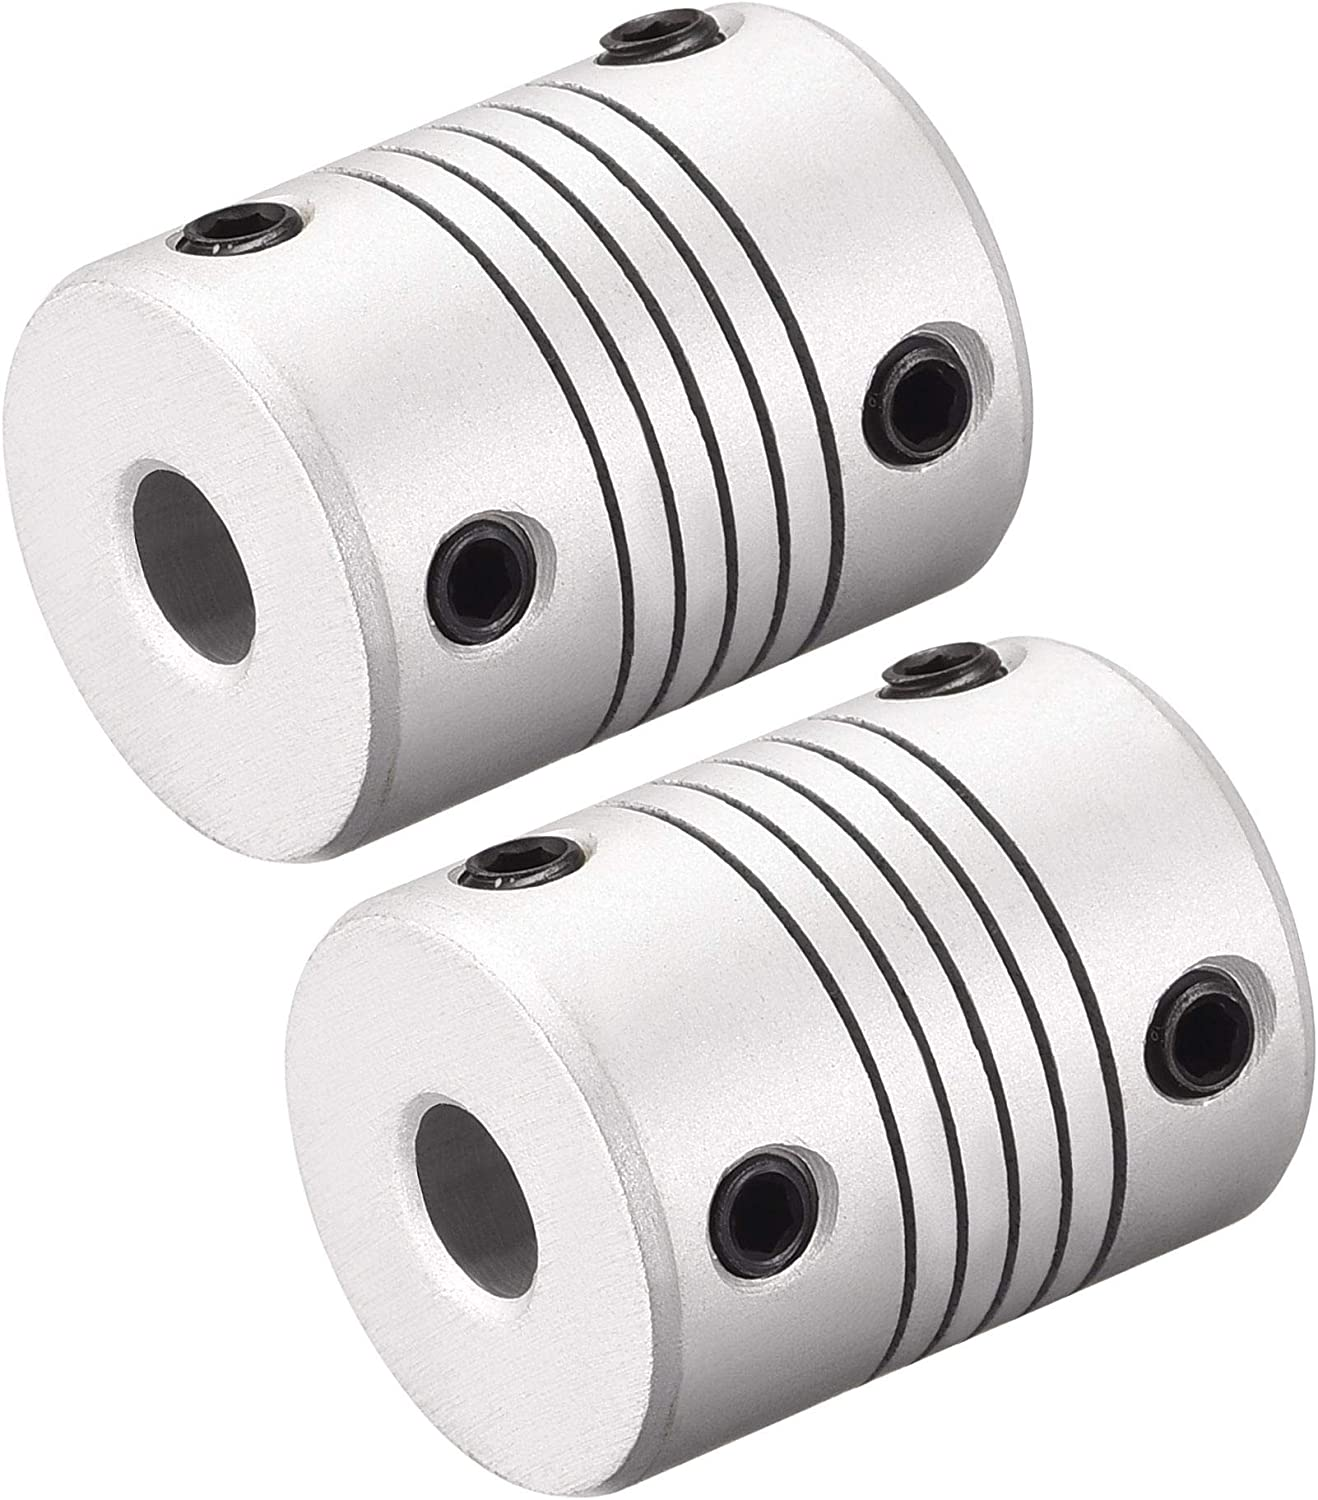 uxcell 8mm to 9mm San Diego 100% quality warranty! Mall Aluminum Coupler Flexible Alloy Coupling Shaft